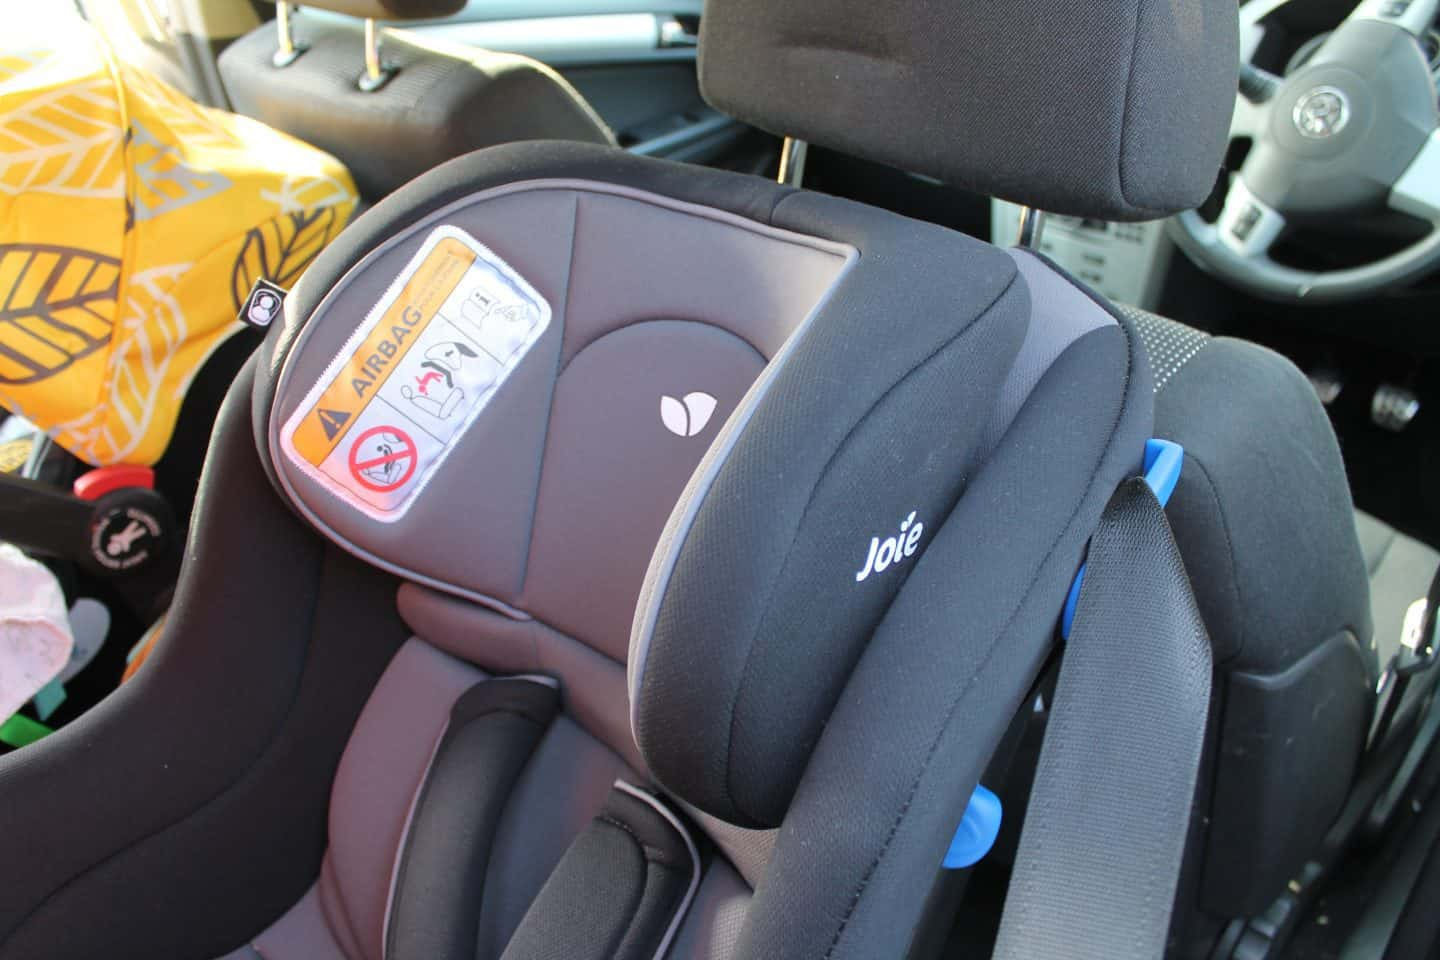 Joie Baby Car Seat Usa Review Joie Steadi Rear Facing Car Seat Scrapbook Blog